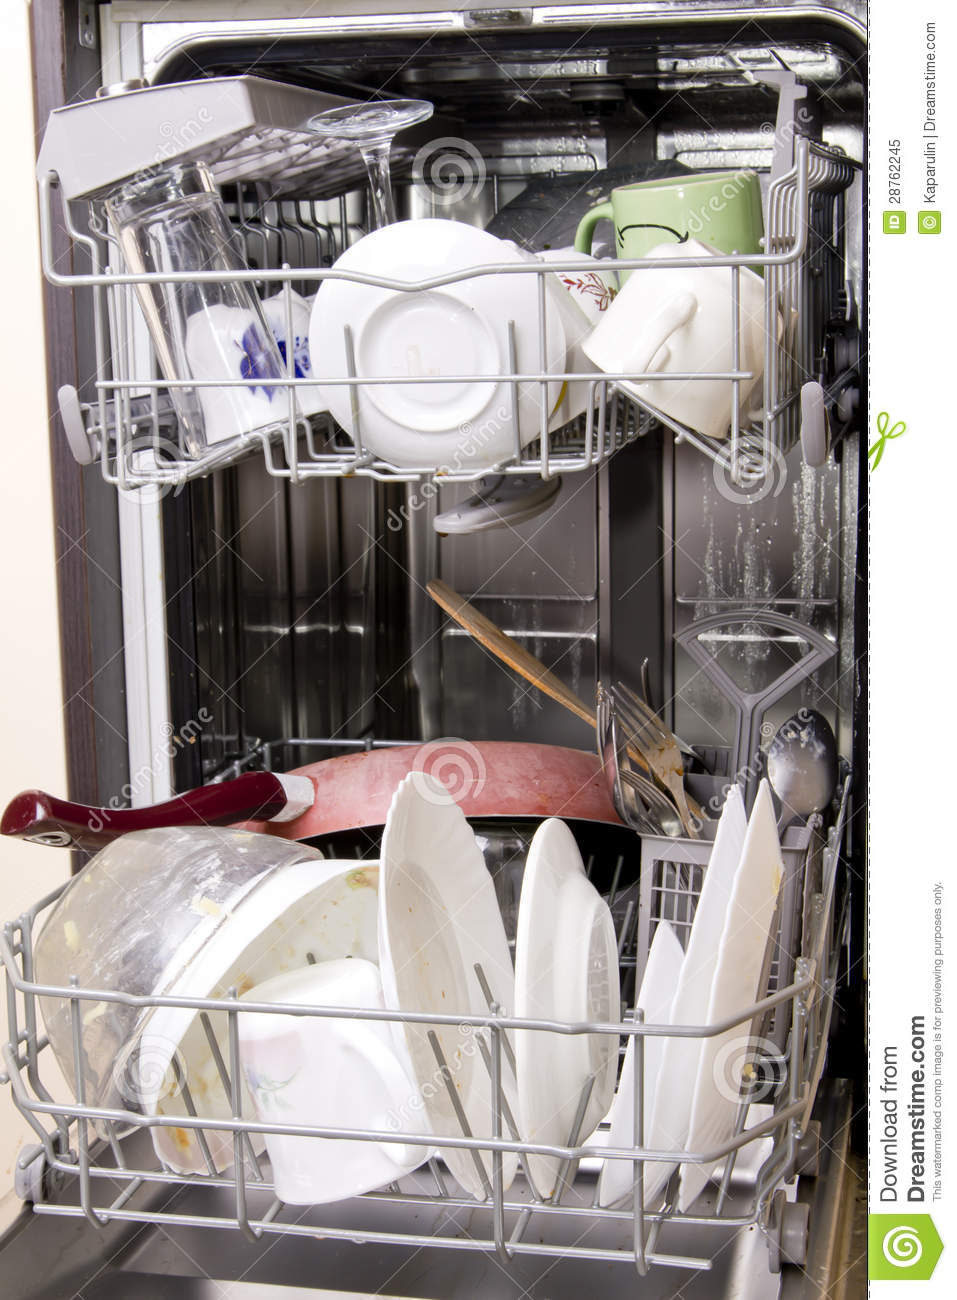 Dishwasher With Dirty Dishes Royalty Free Stock Photo ...